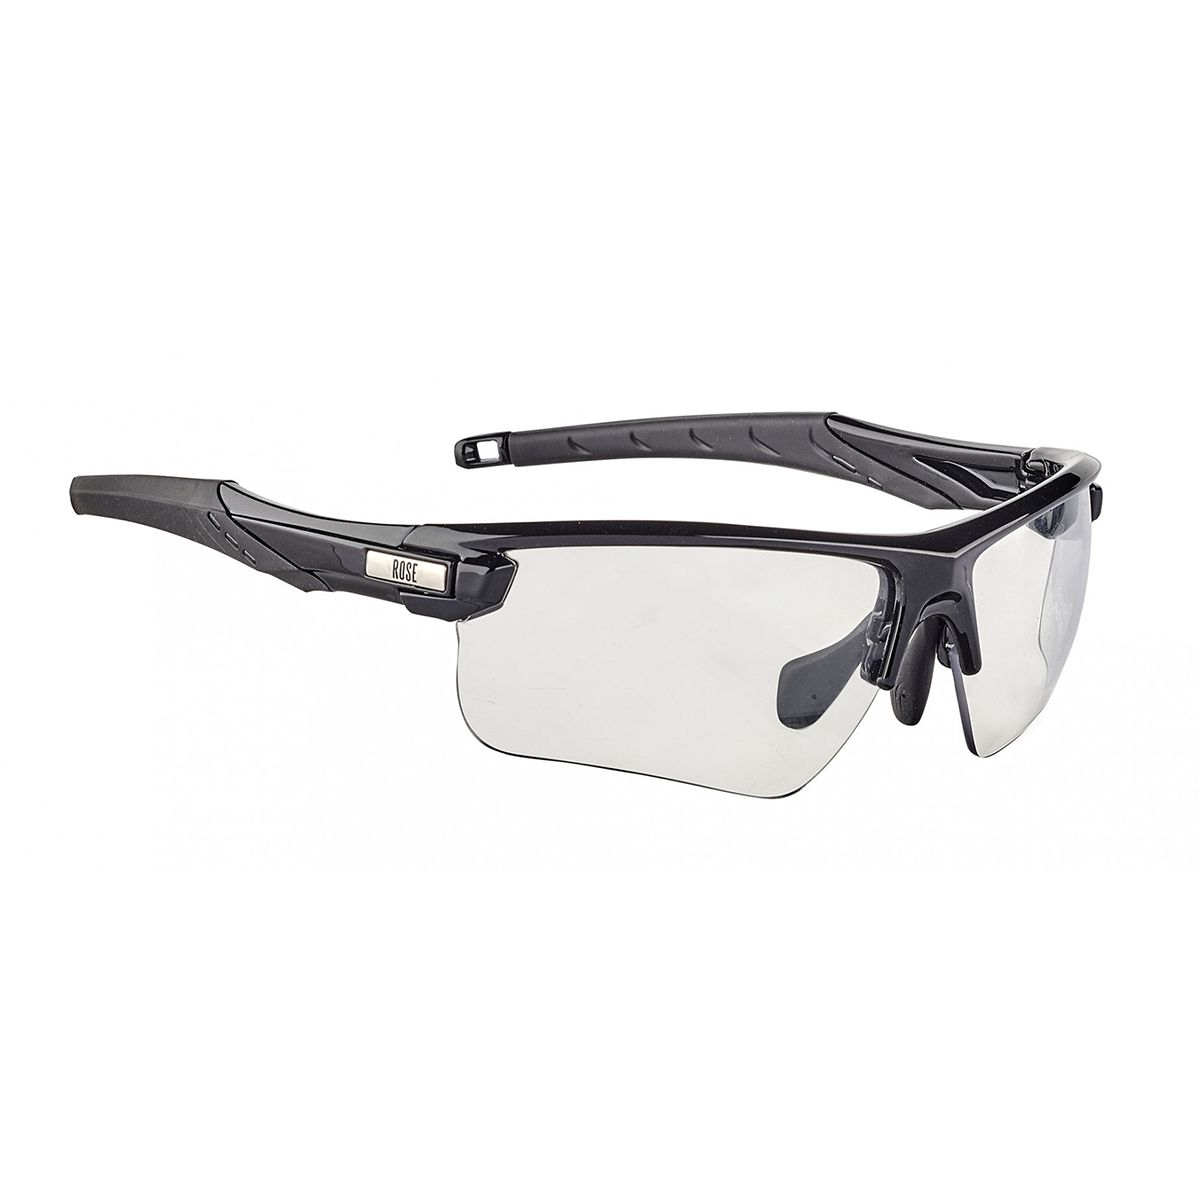 PS 07 Photochromic Brille